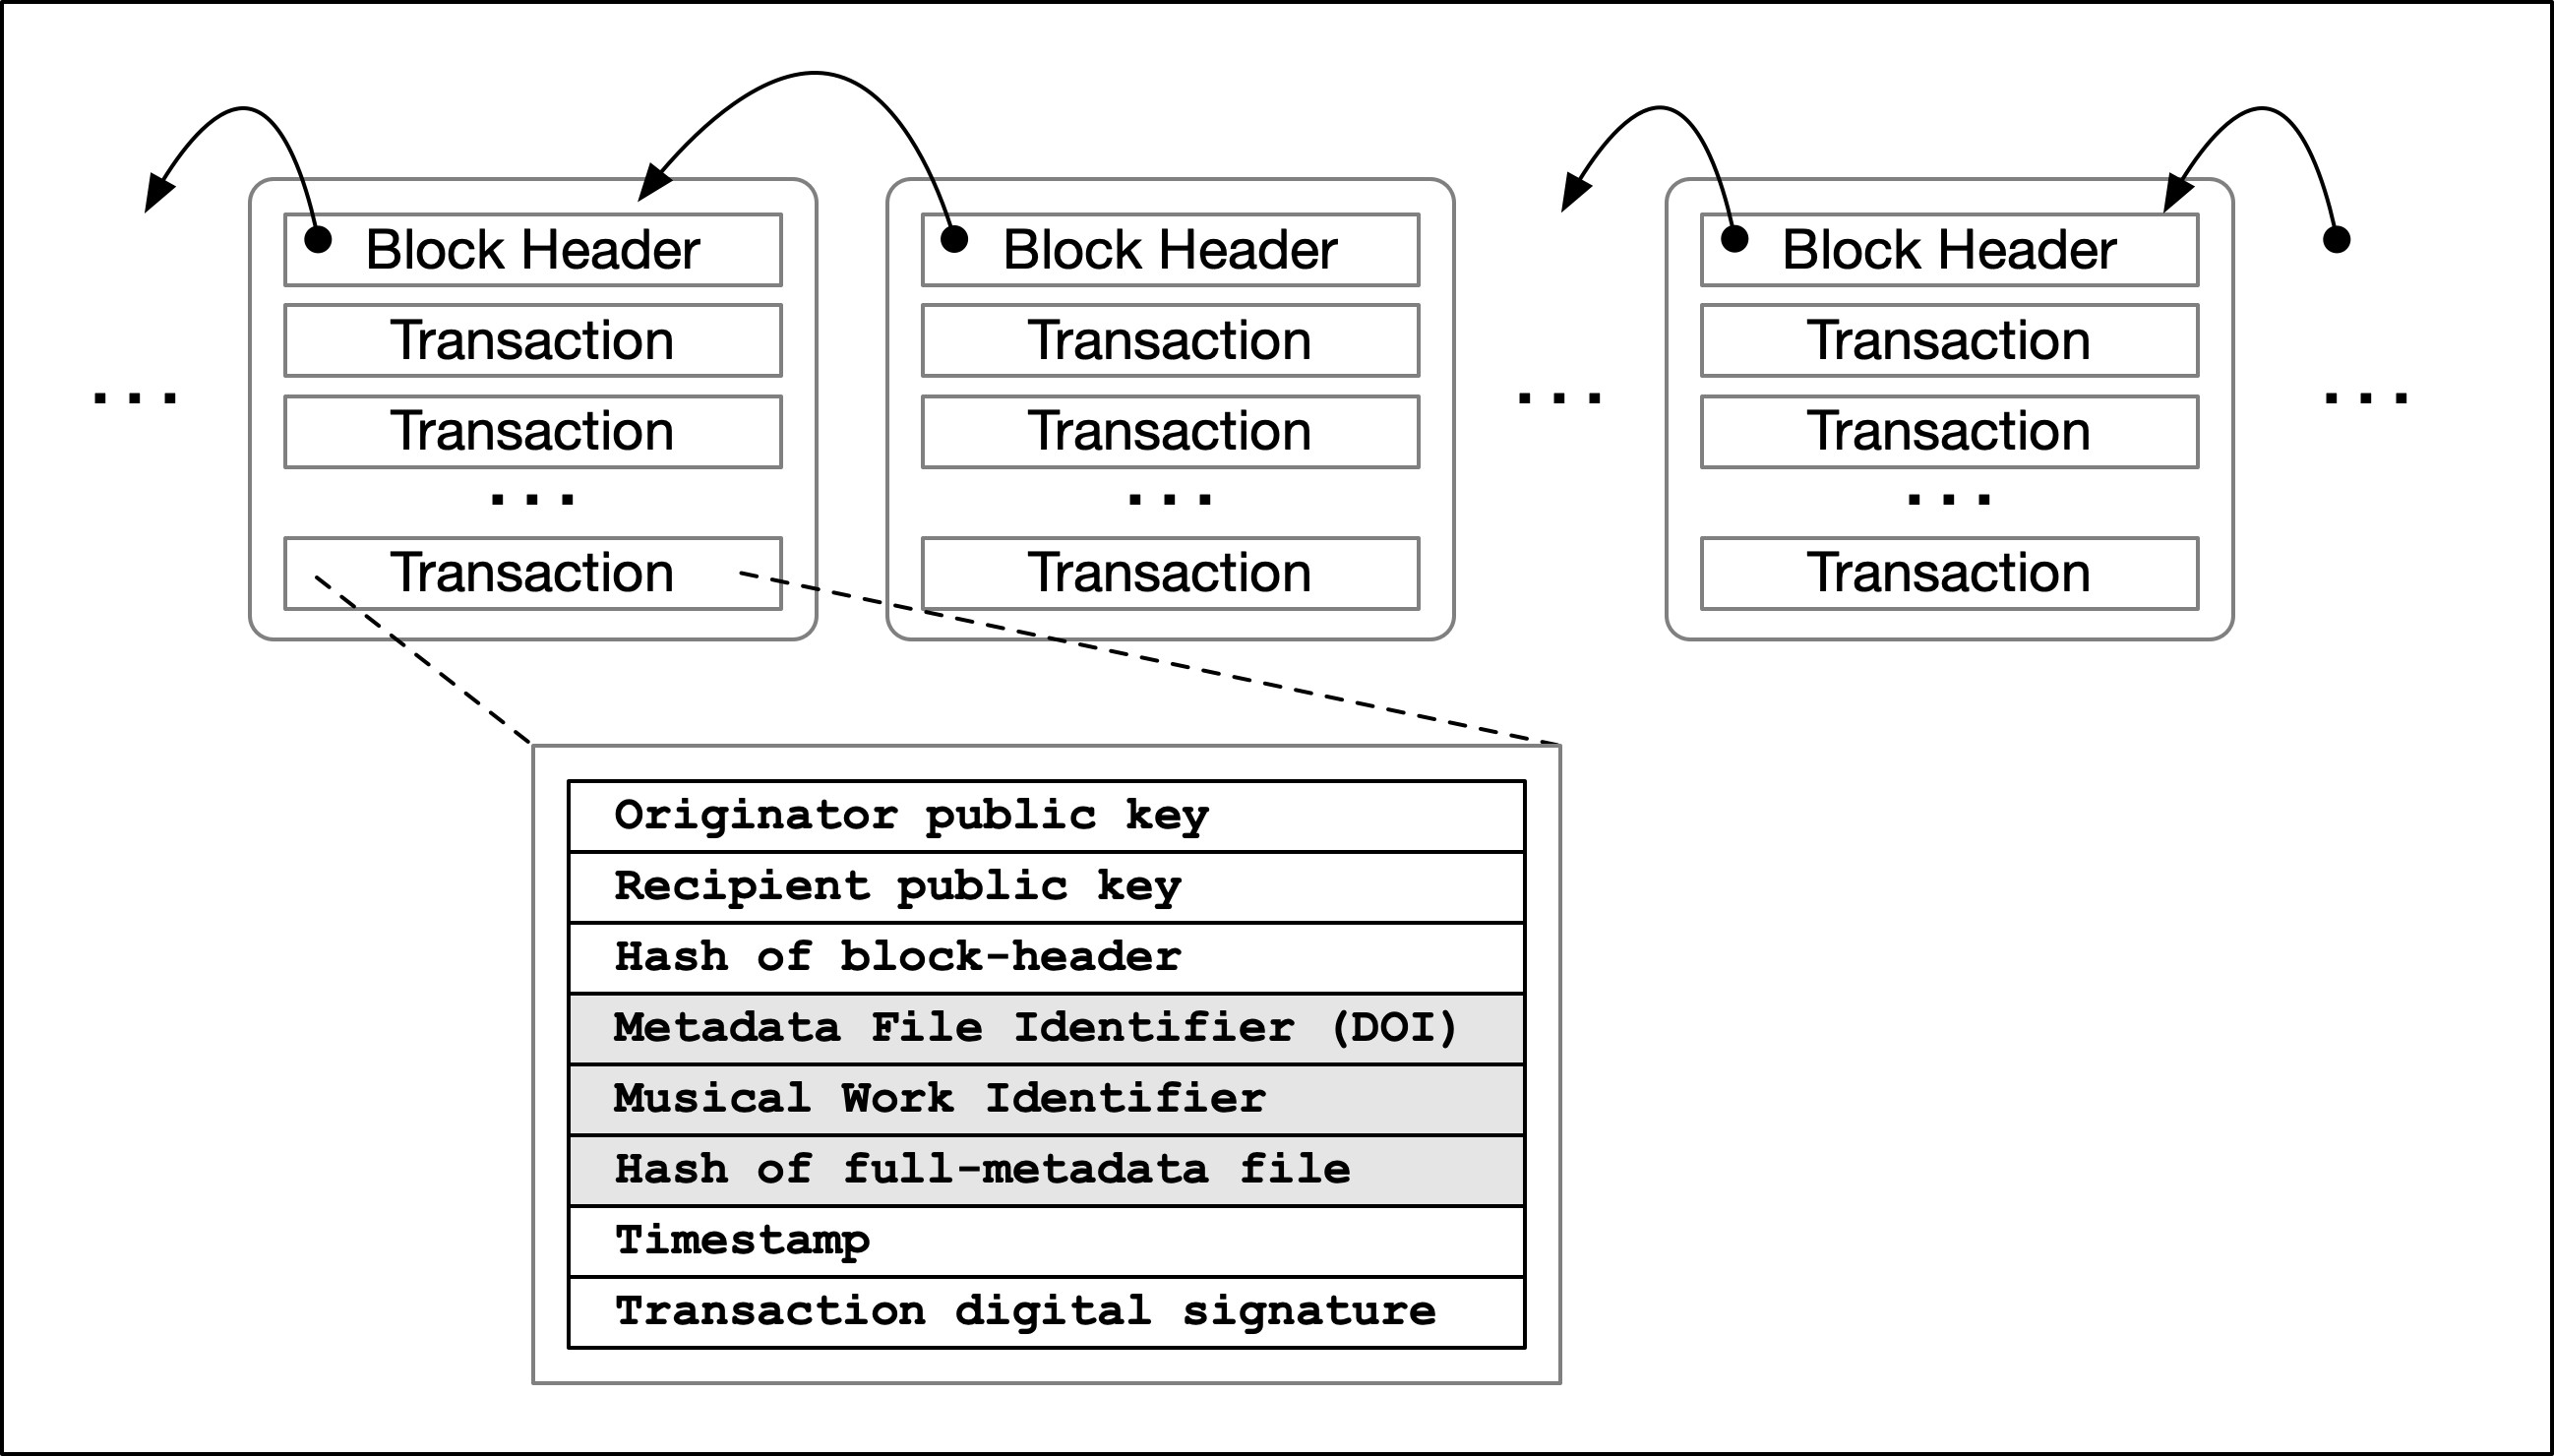 <p>Figure 8: Illustration of a transaction in a block containing registry-metadata (grey fields)</p>